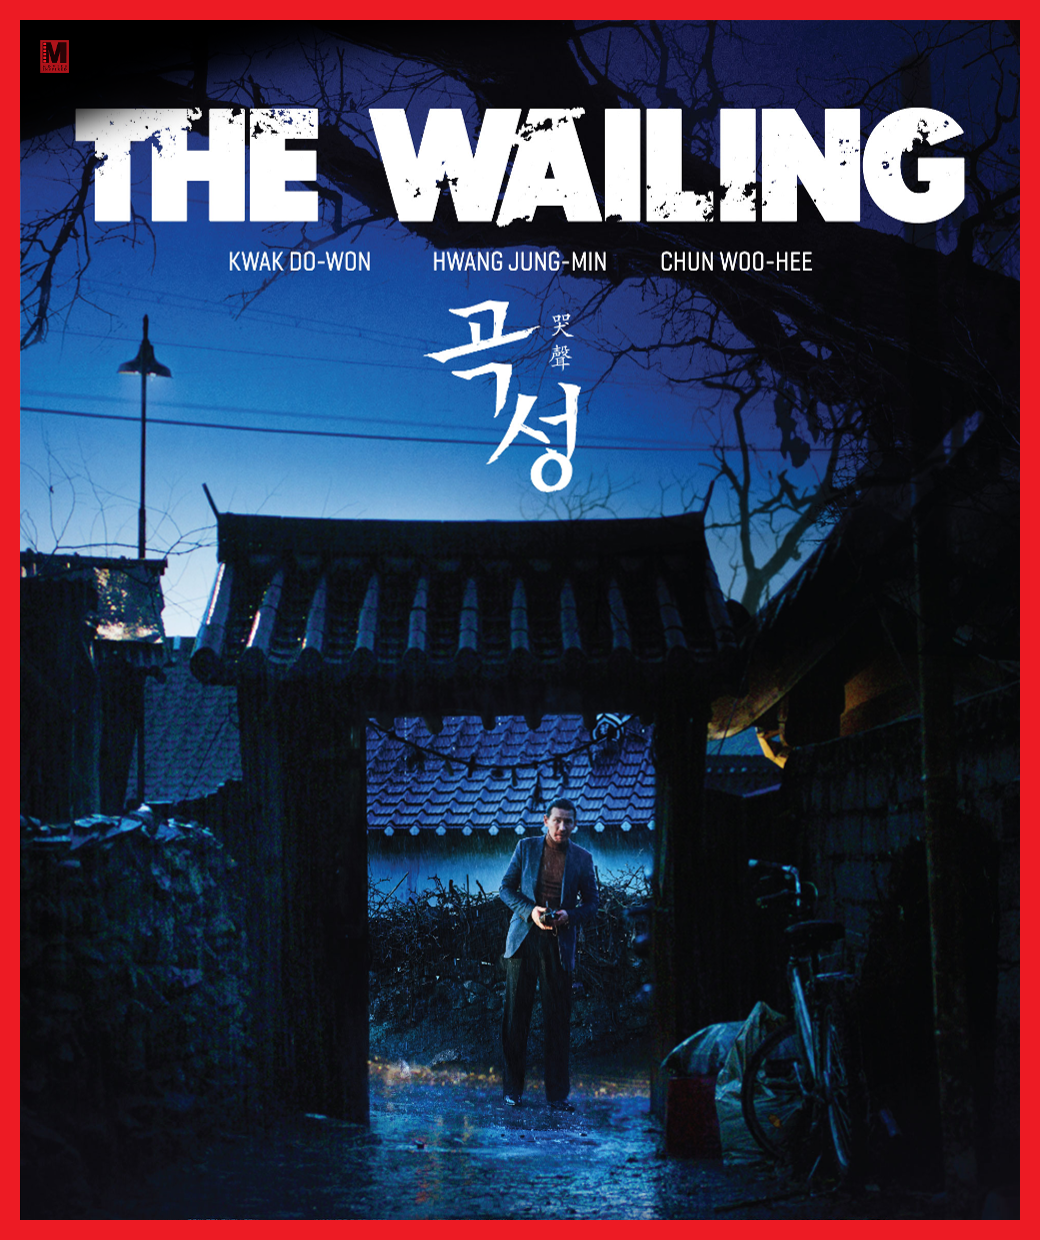 Live Action On Blu-ray!: The Wailing